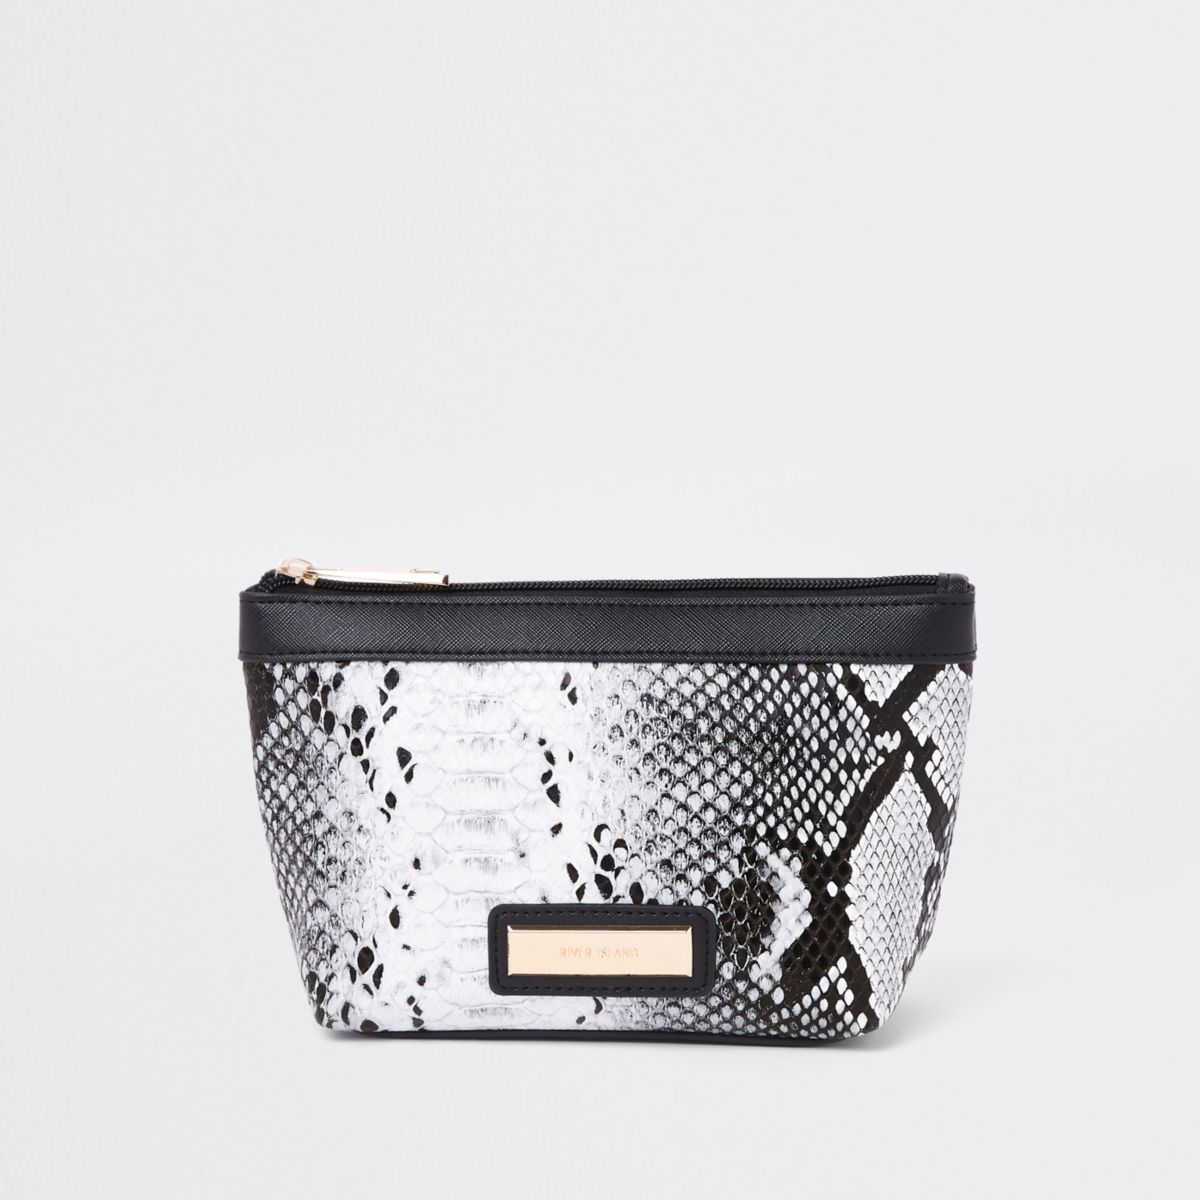 Black metallic snake print makeup bag